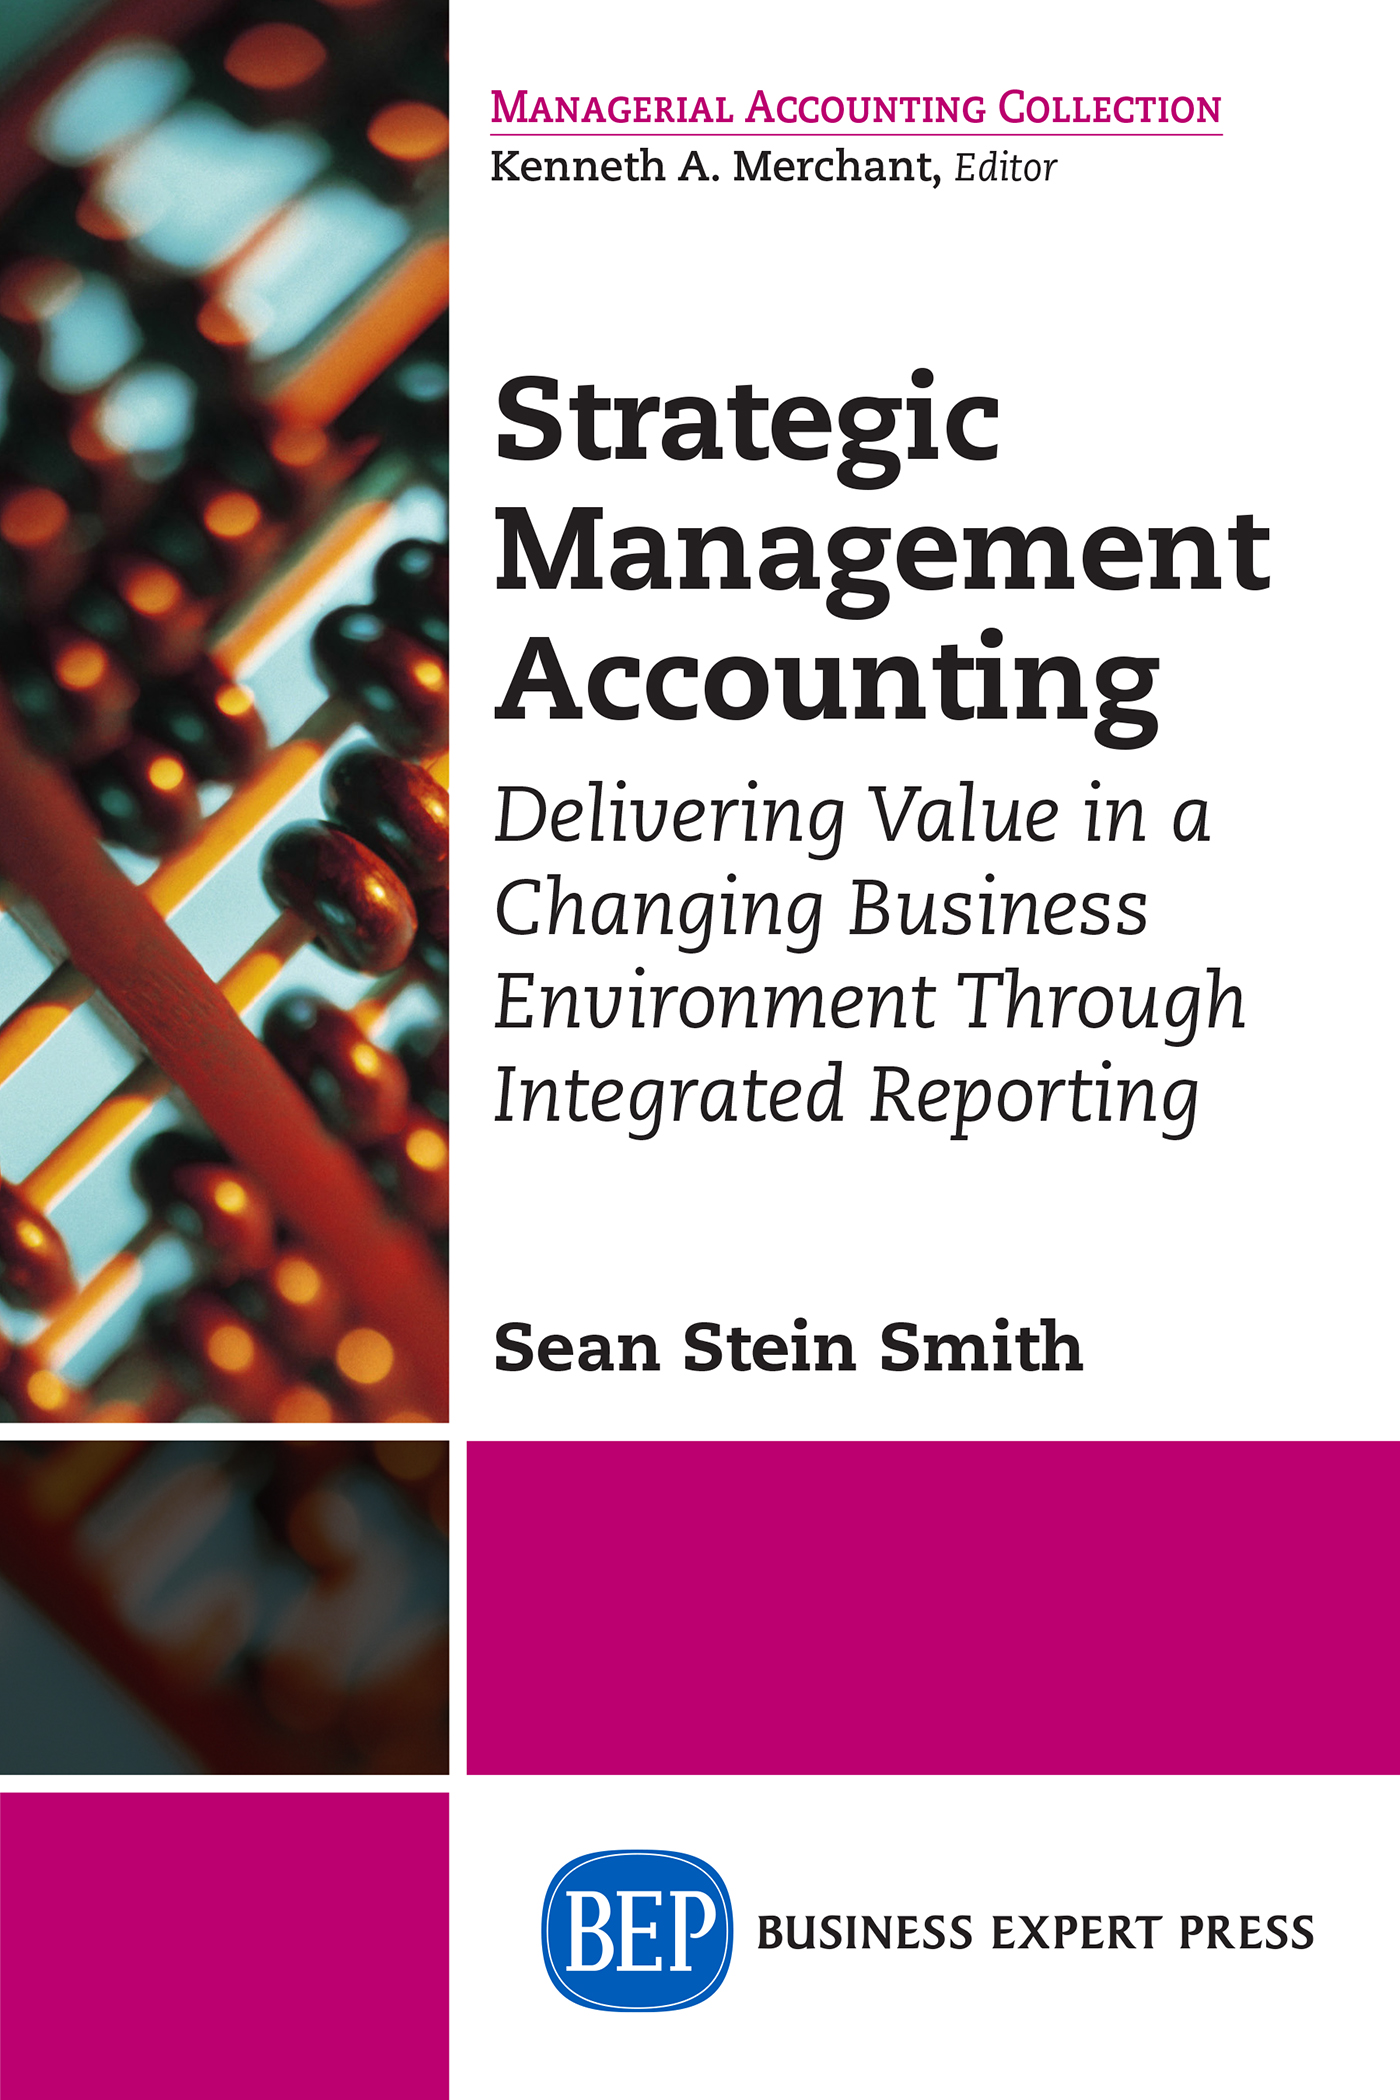 Download Ebook Strategic Management Accounting by Sean Stein Smith Pdf